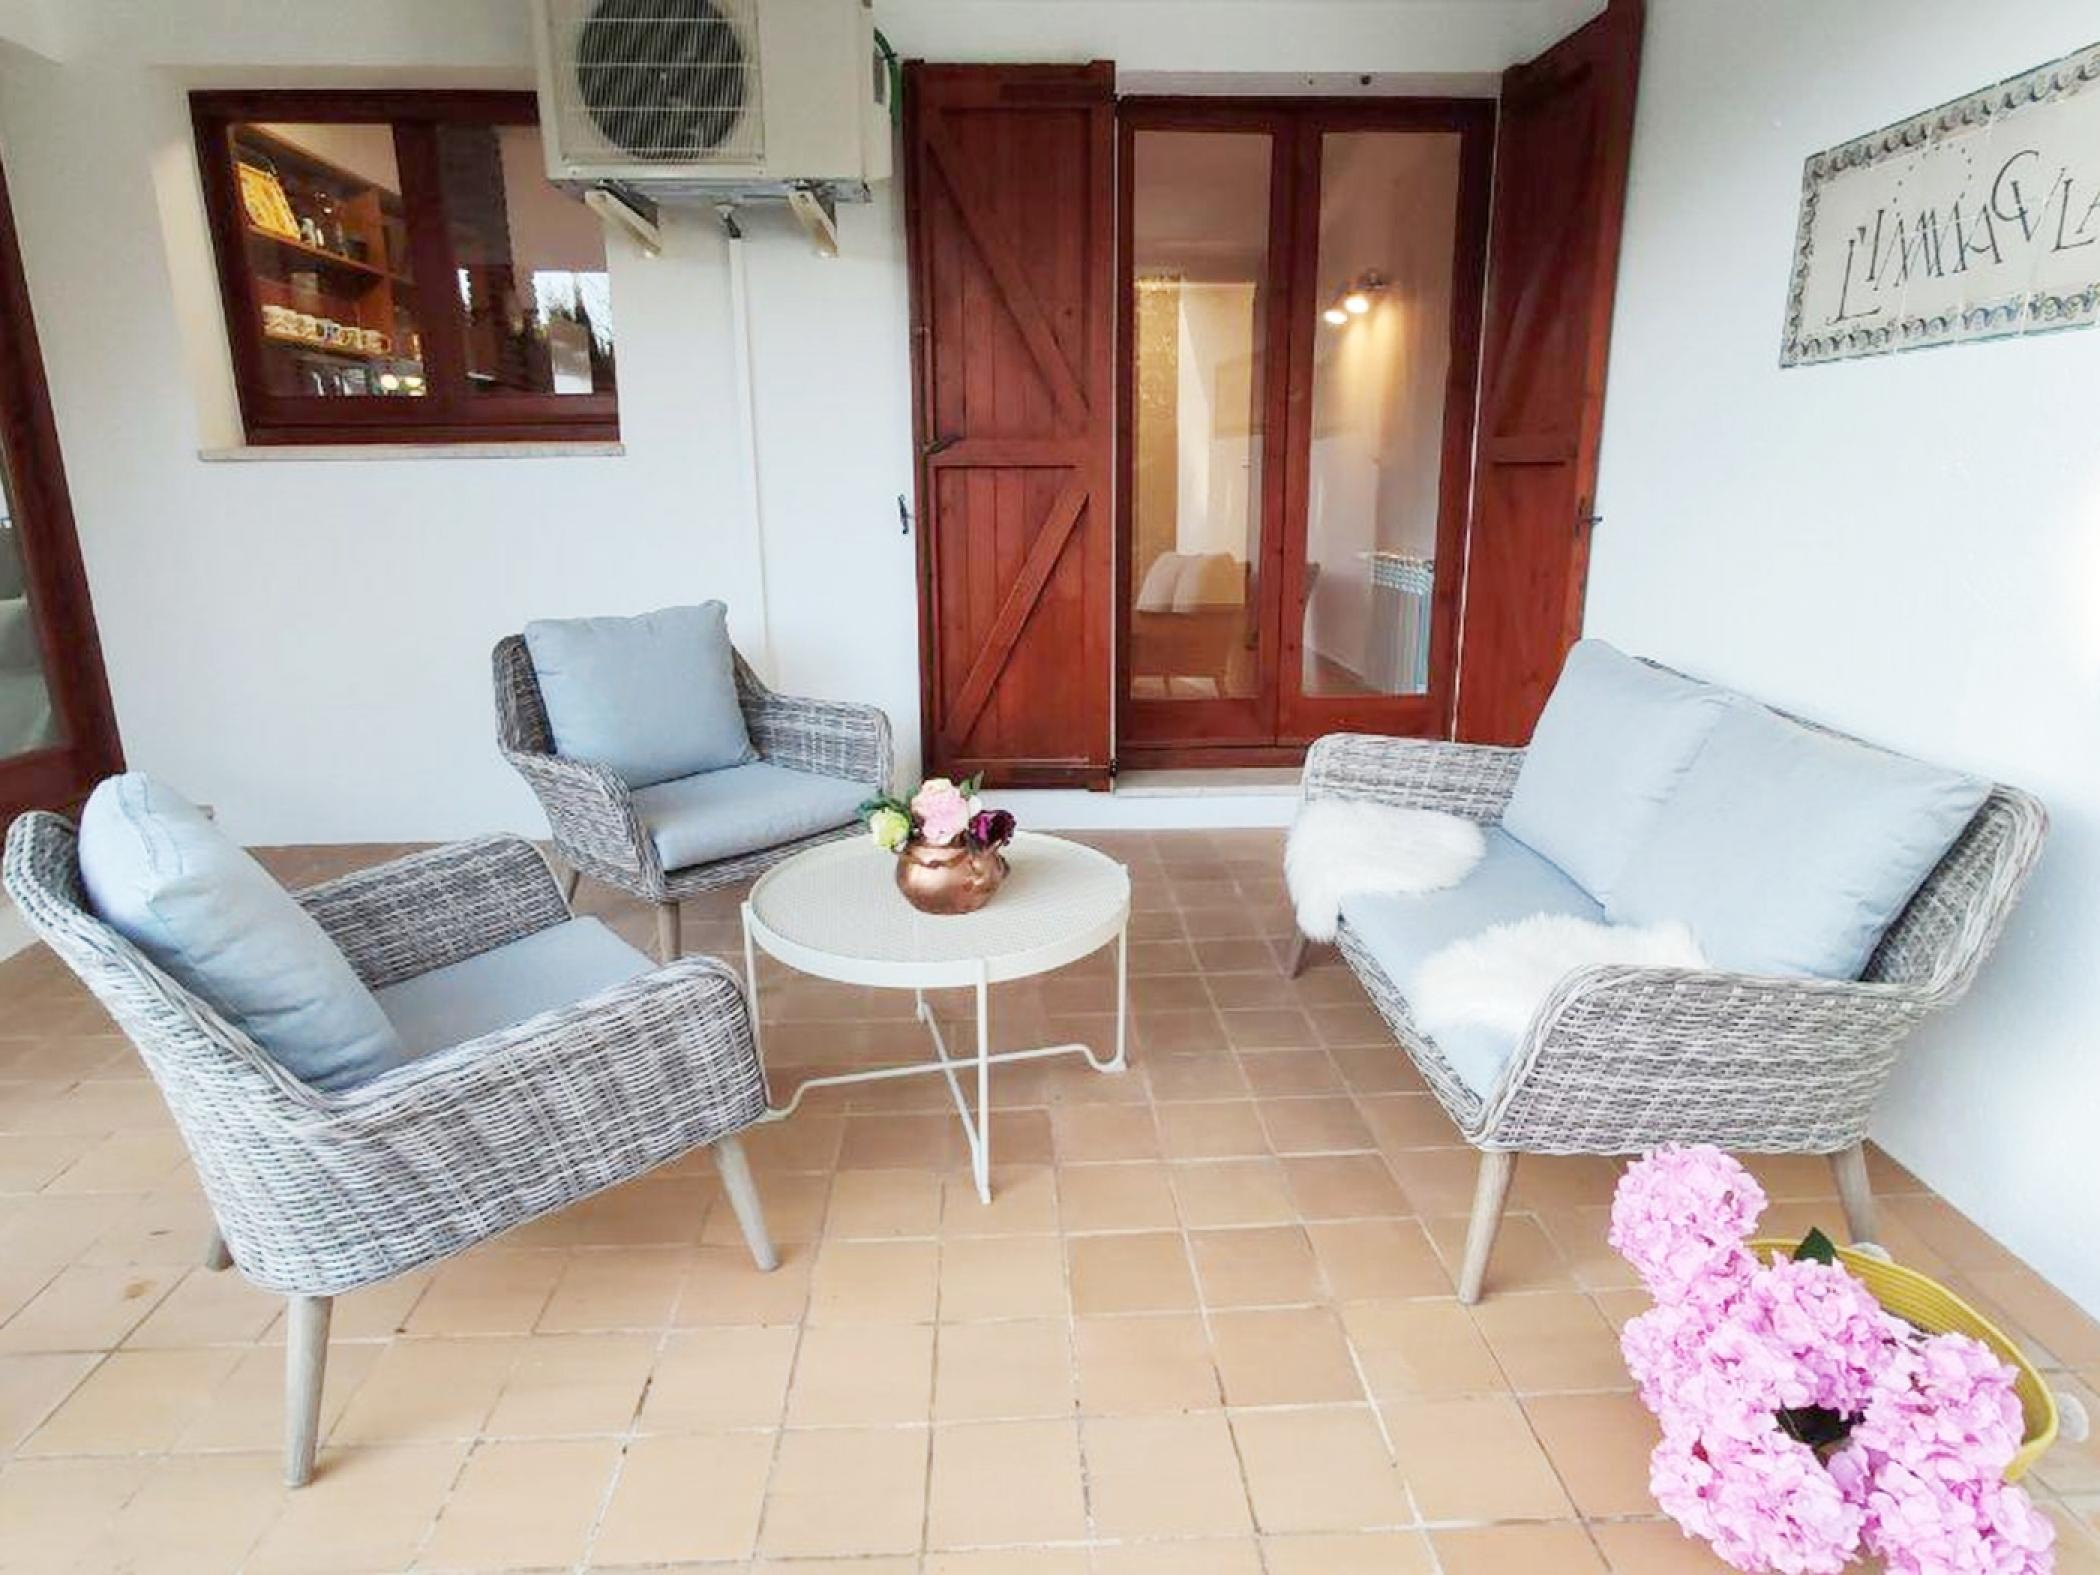 Rent Villa with Swimming pool in Caldes de Malavella - Villa a Caldes de Malavella Molins - 7